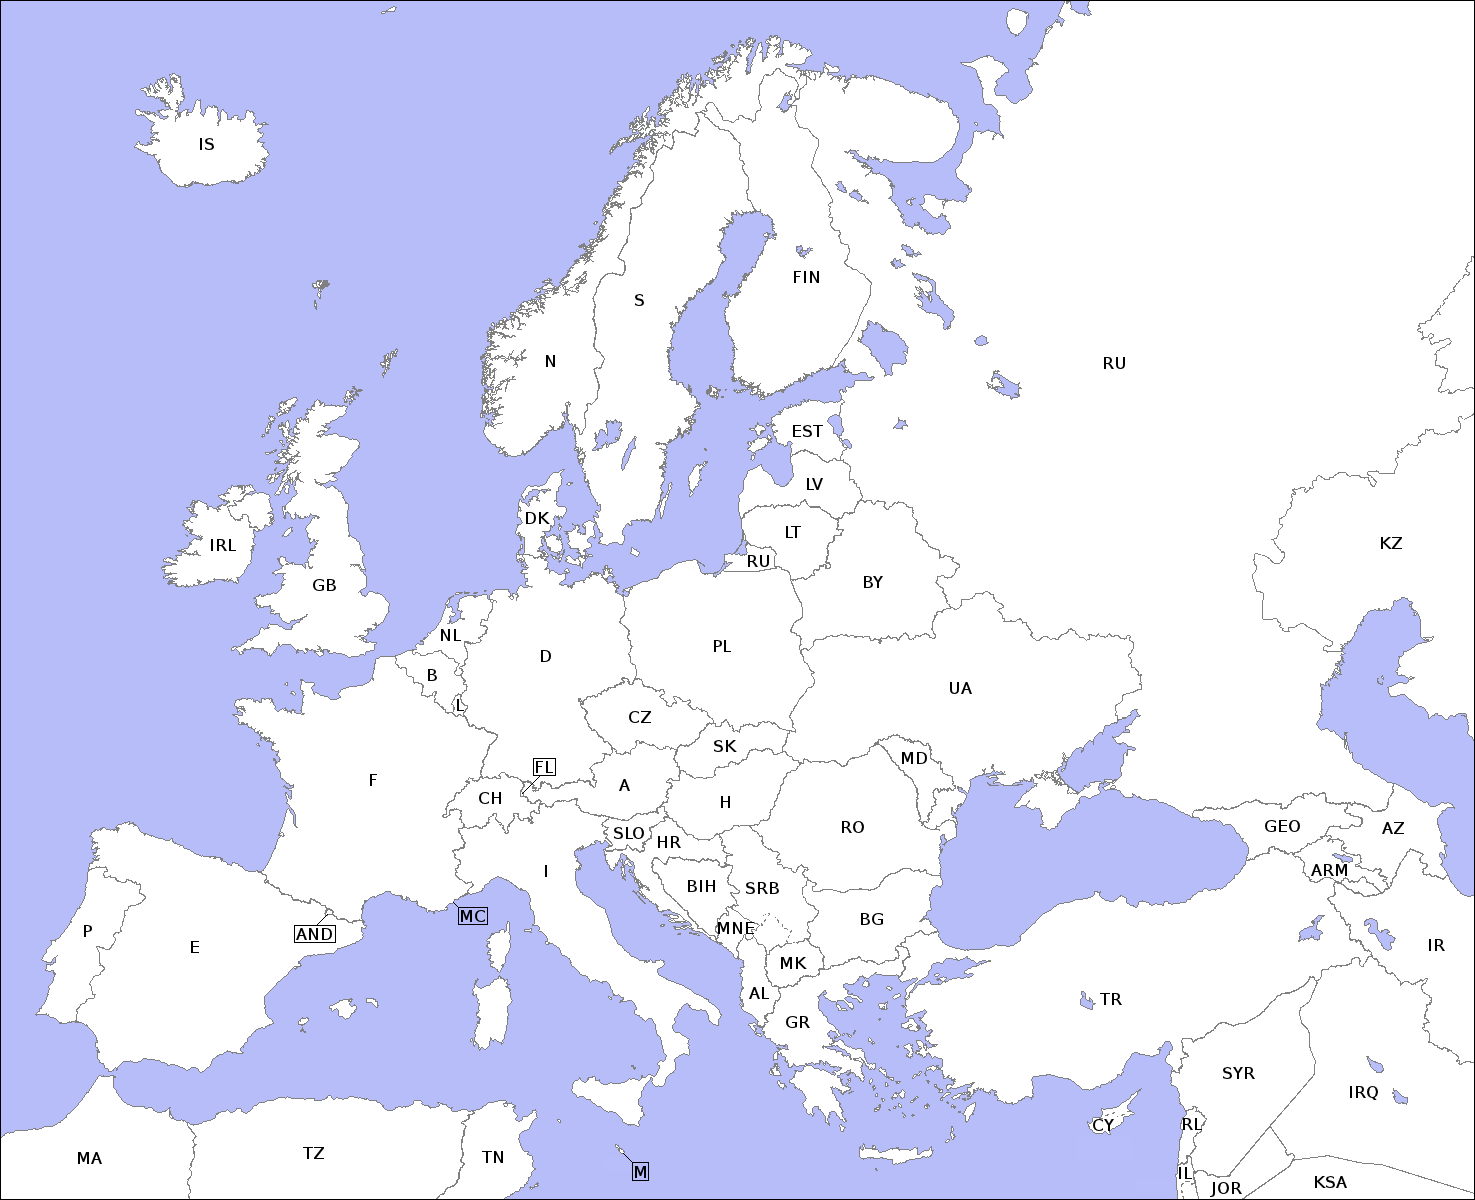 fileeurope countries map contoursxcf